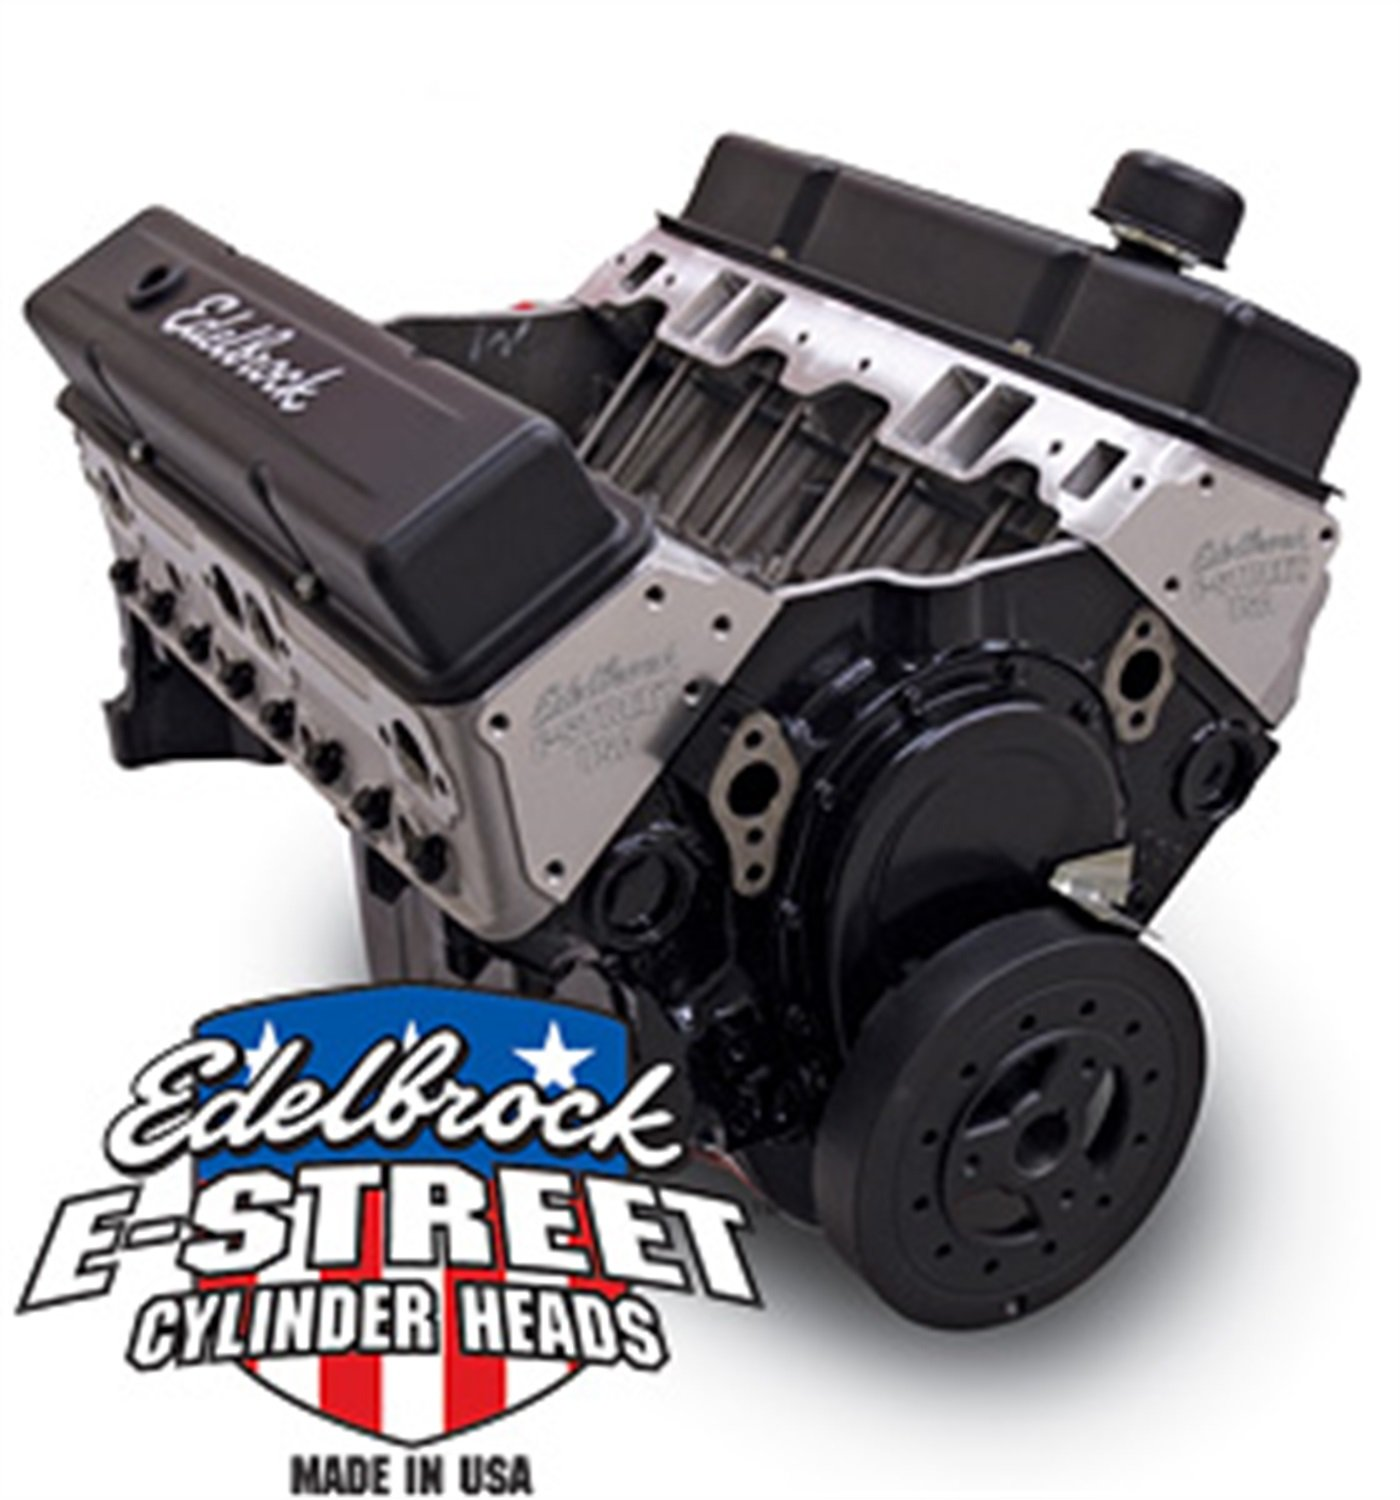 Edelbrock 45070 E-Street Crate Engine 9.0:1 Compression 5500 RMP Max Incl. E-Street PN[5089] Cyl. Heads/Performer PN[2102] Camshaft w/o Water Pump Satin E-Street Crate Engine